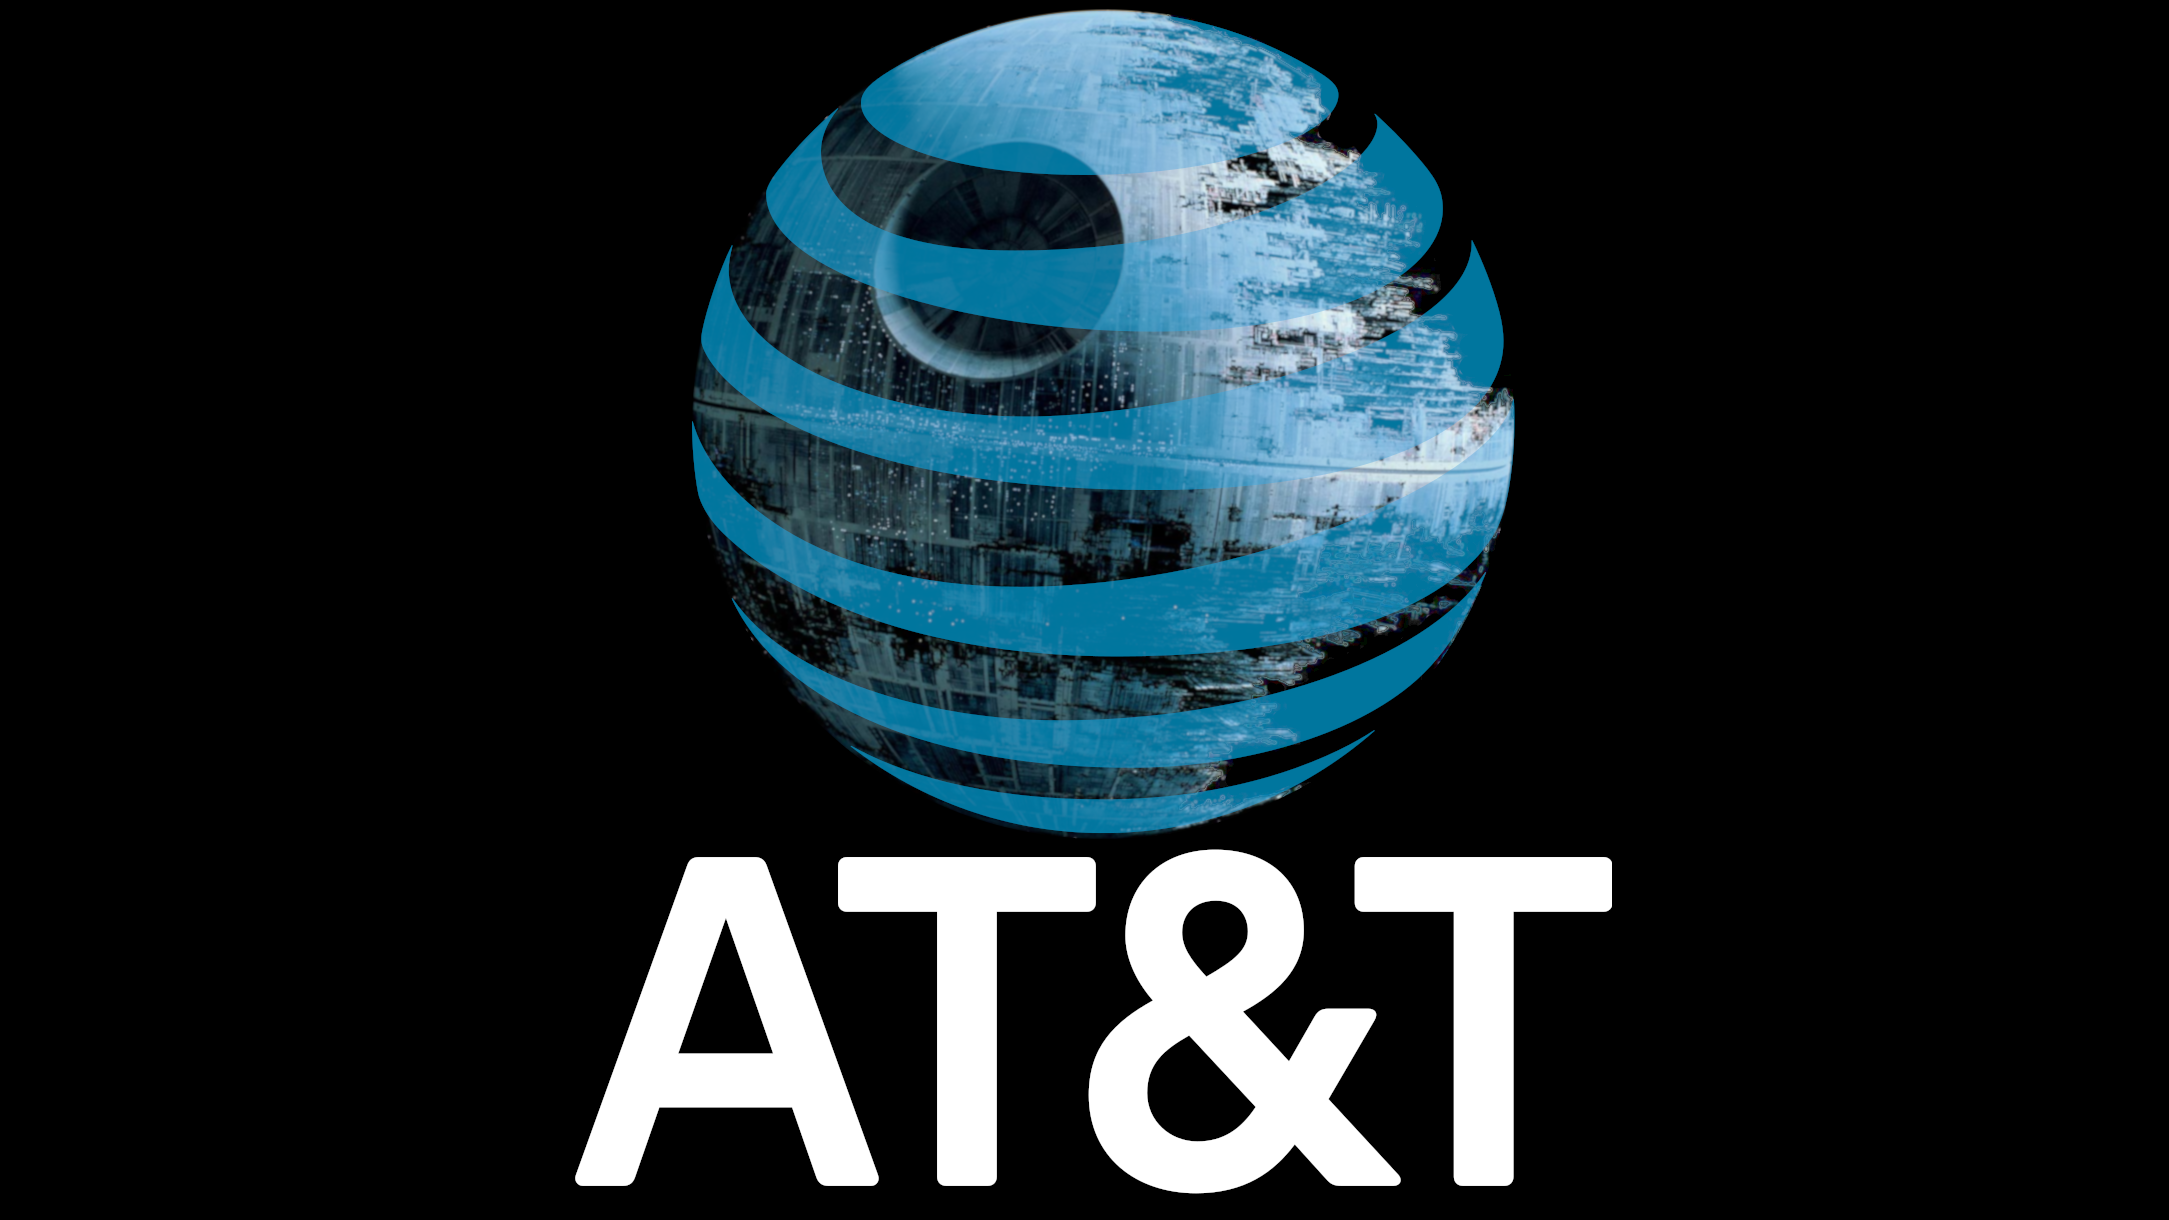 AT&T is scaring customers into buying new phones with a misleading email